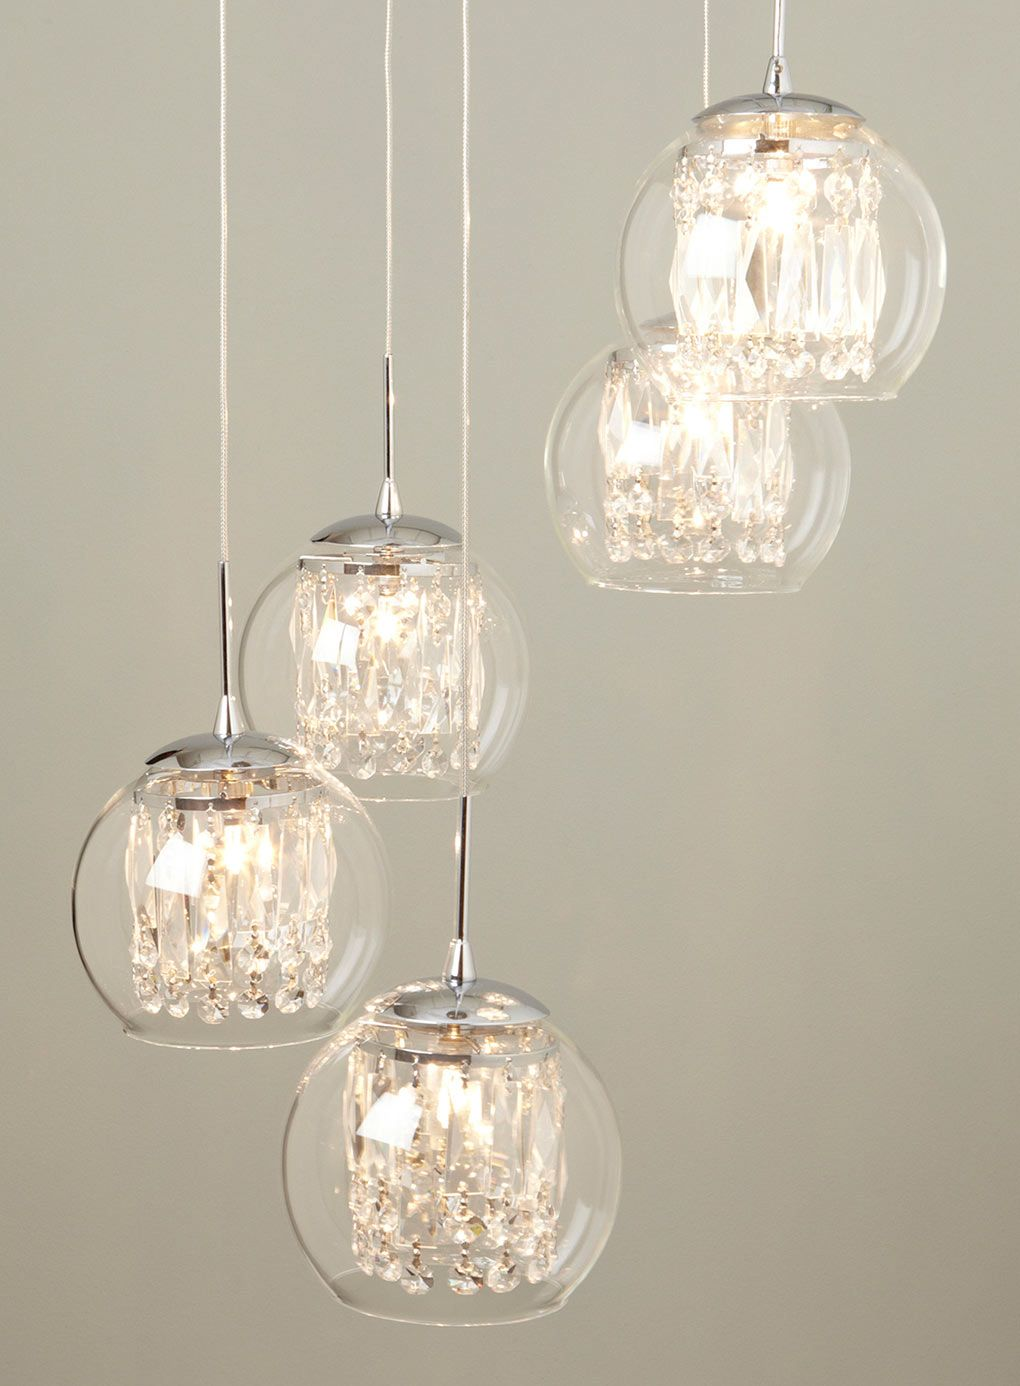 Glass Crystal Spiral Pendant Chandelier Lighting For